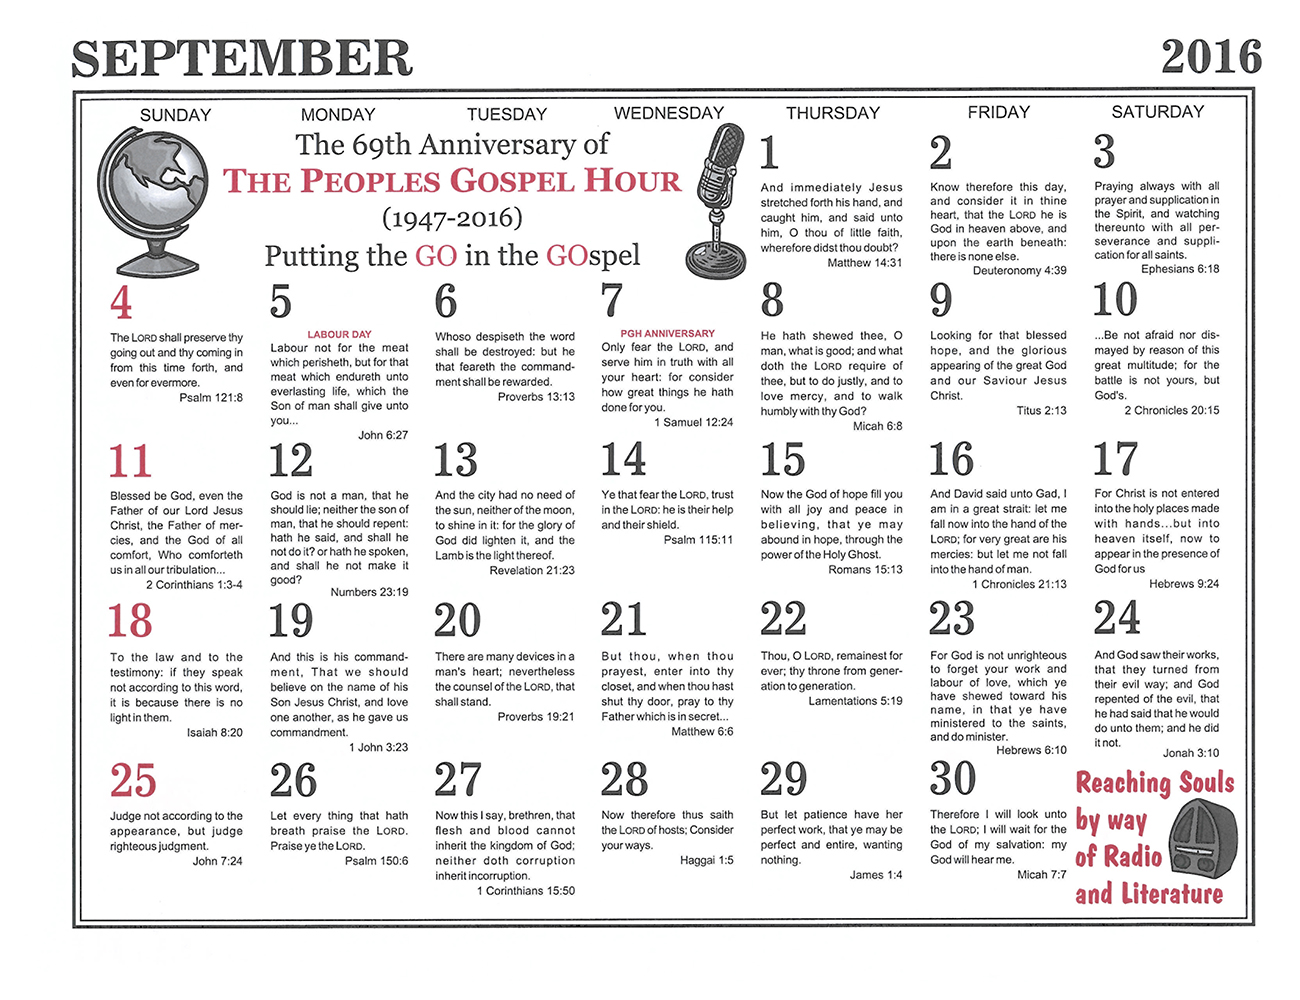 September: 2016 The Peoples Gospel Hour Calendar